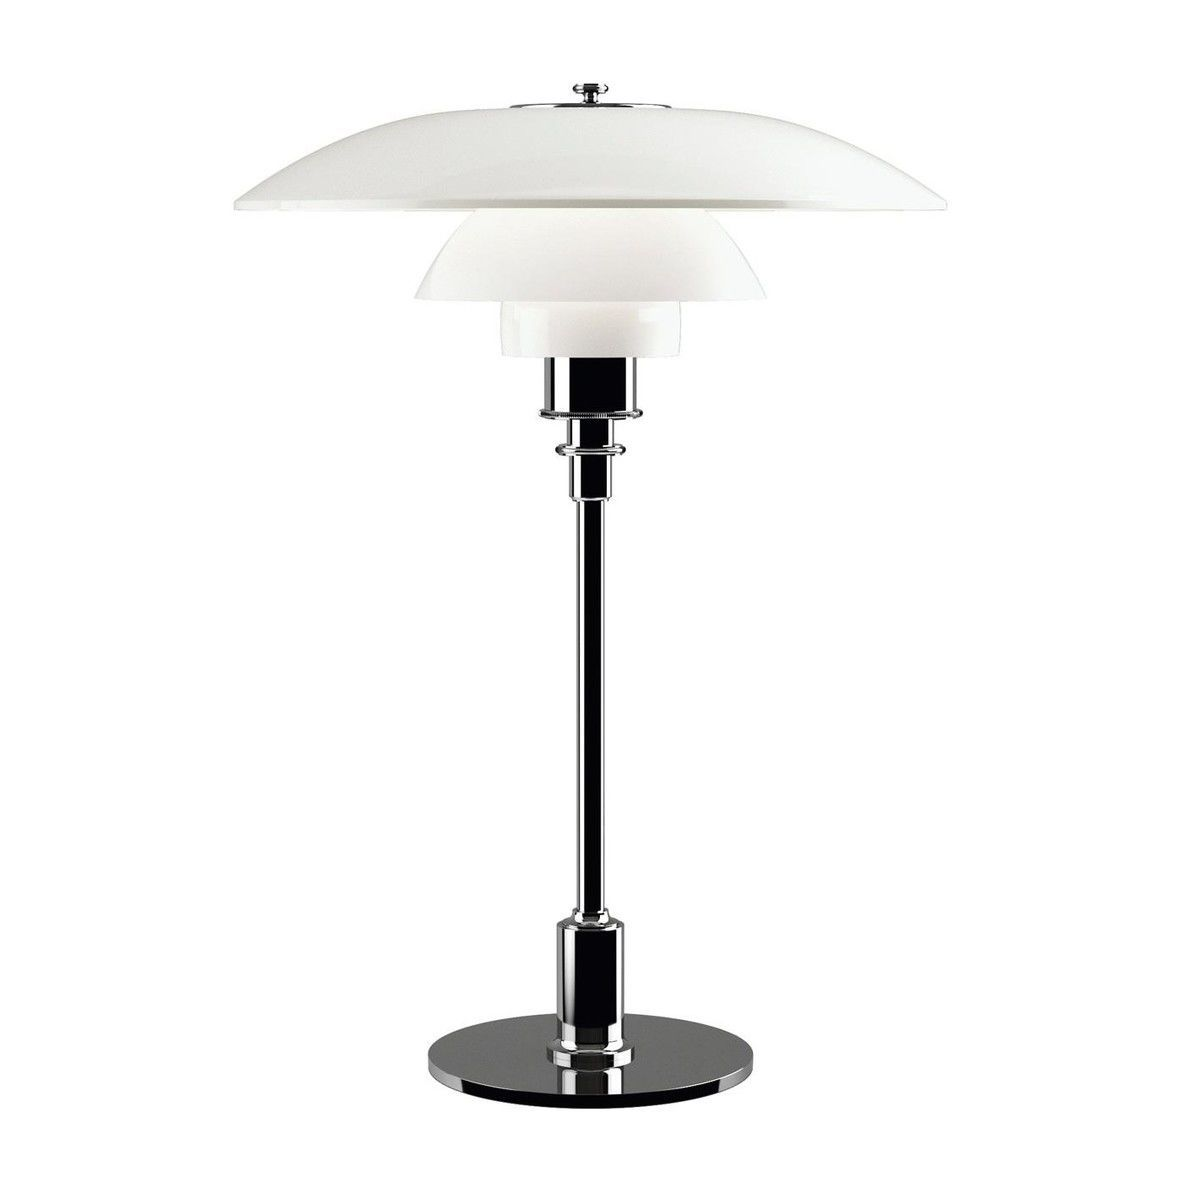 PH 3 1/2   2 1/2 Glass Table Lamp   Opal